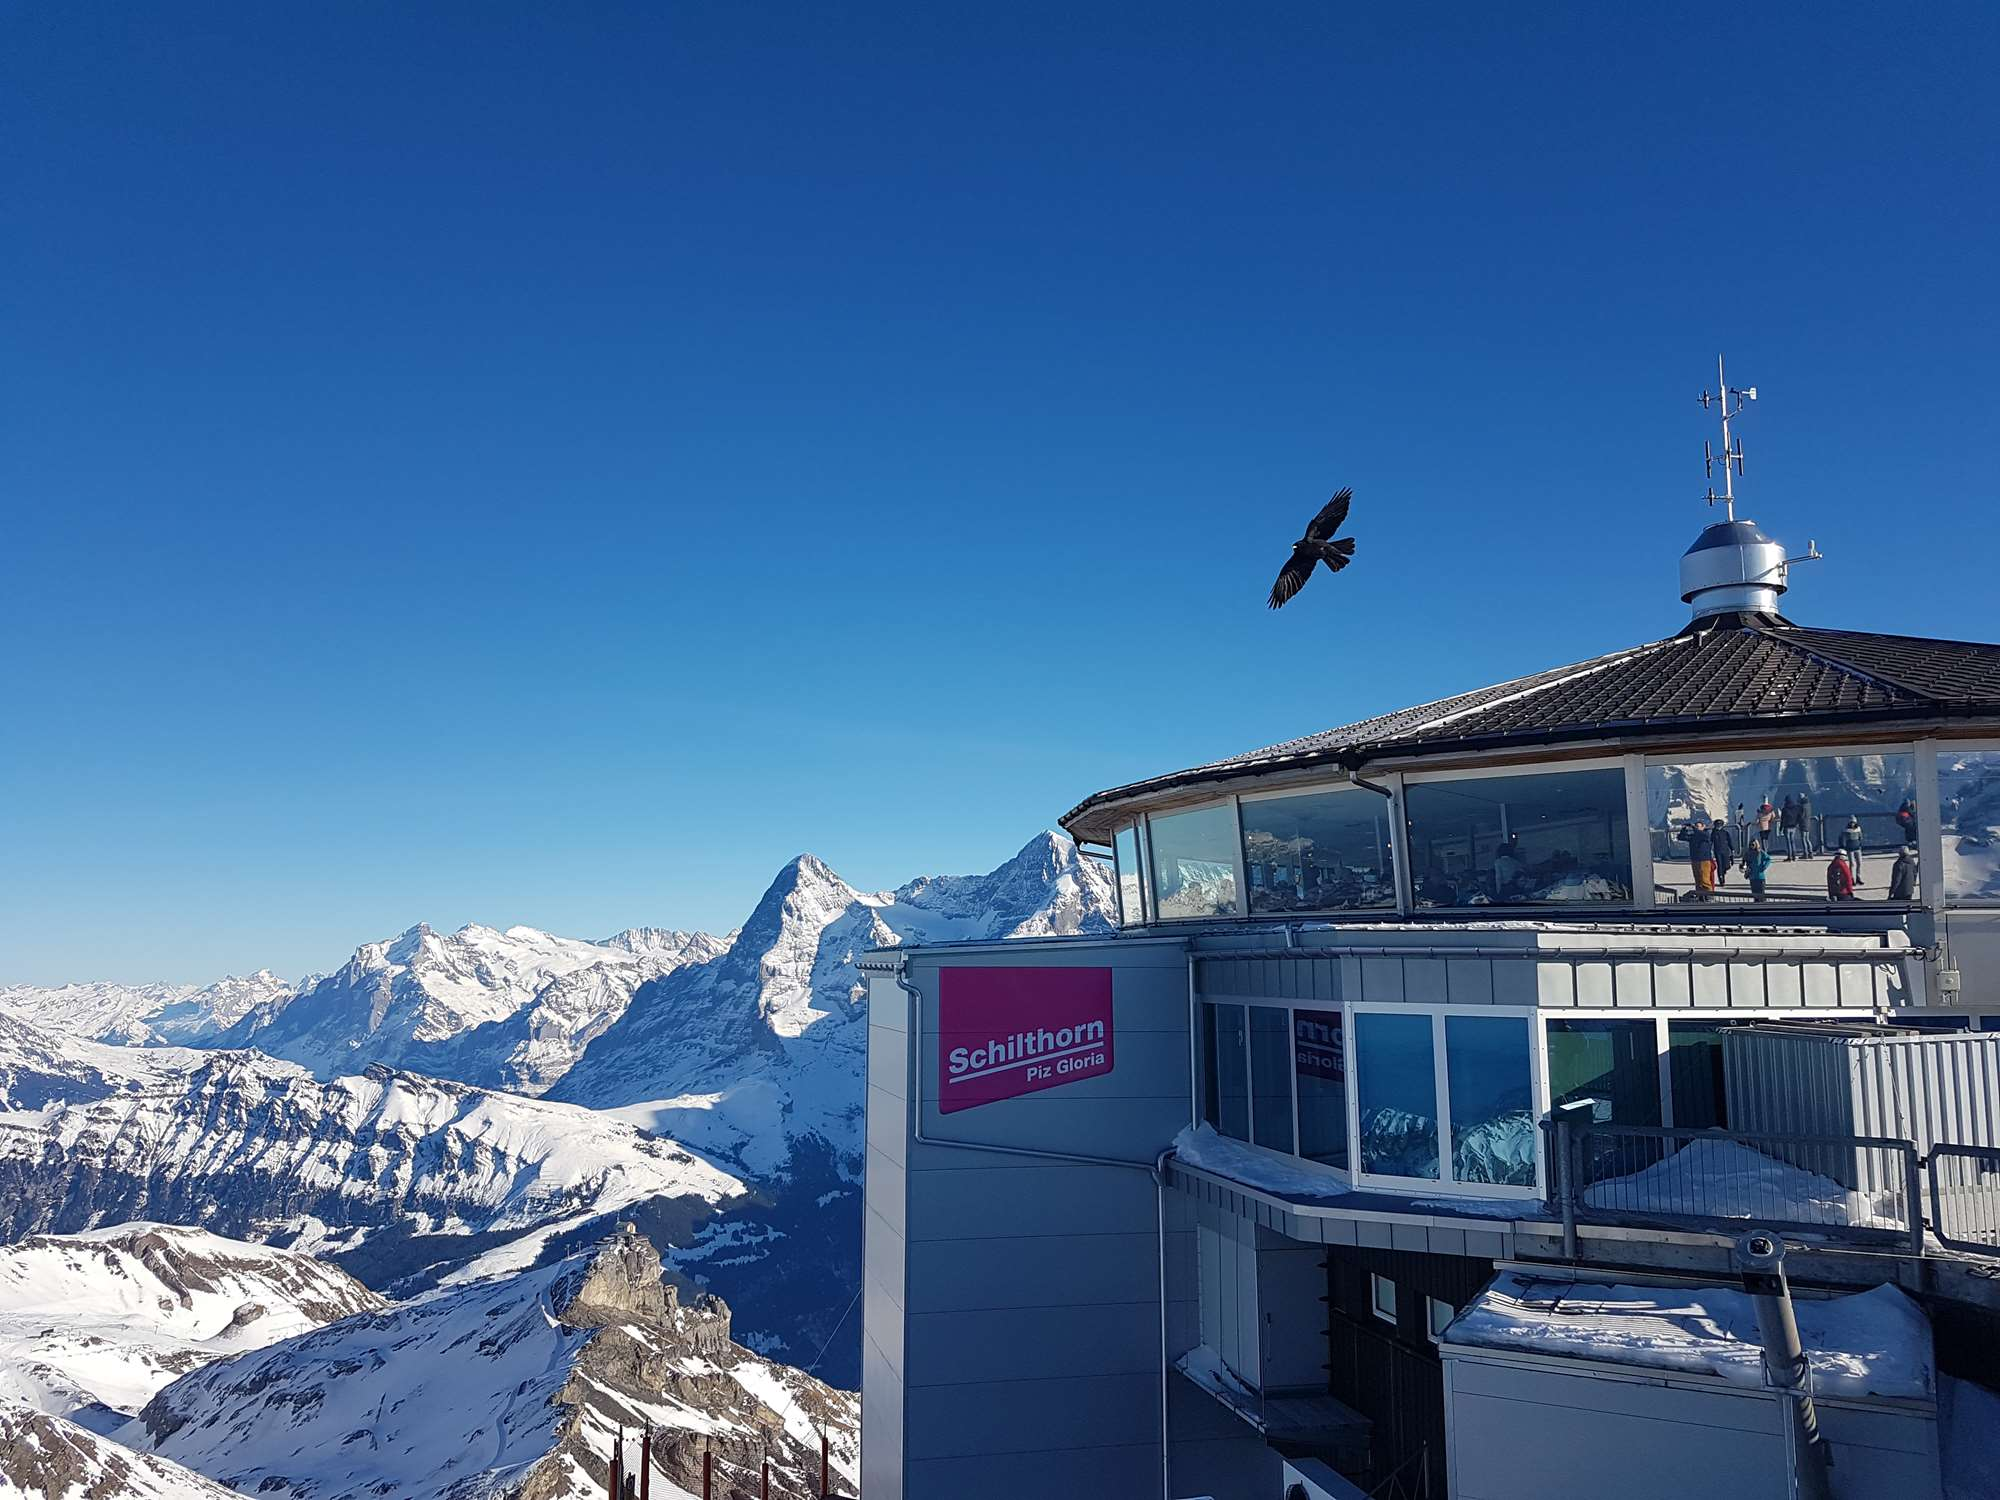 The Piz Gloria at the top of the Schilthorn